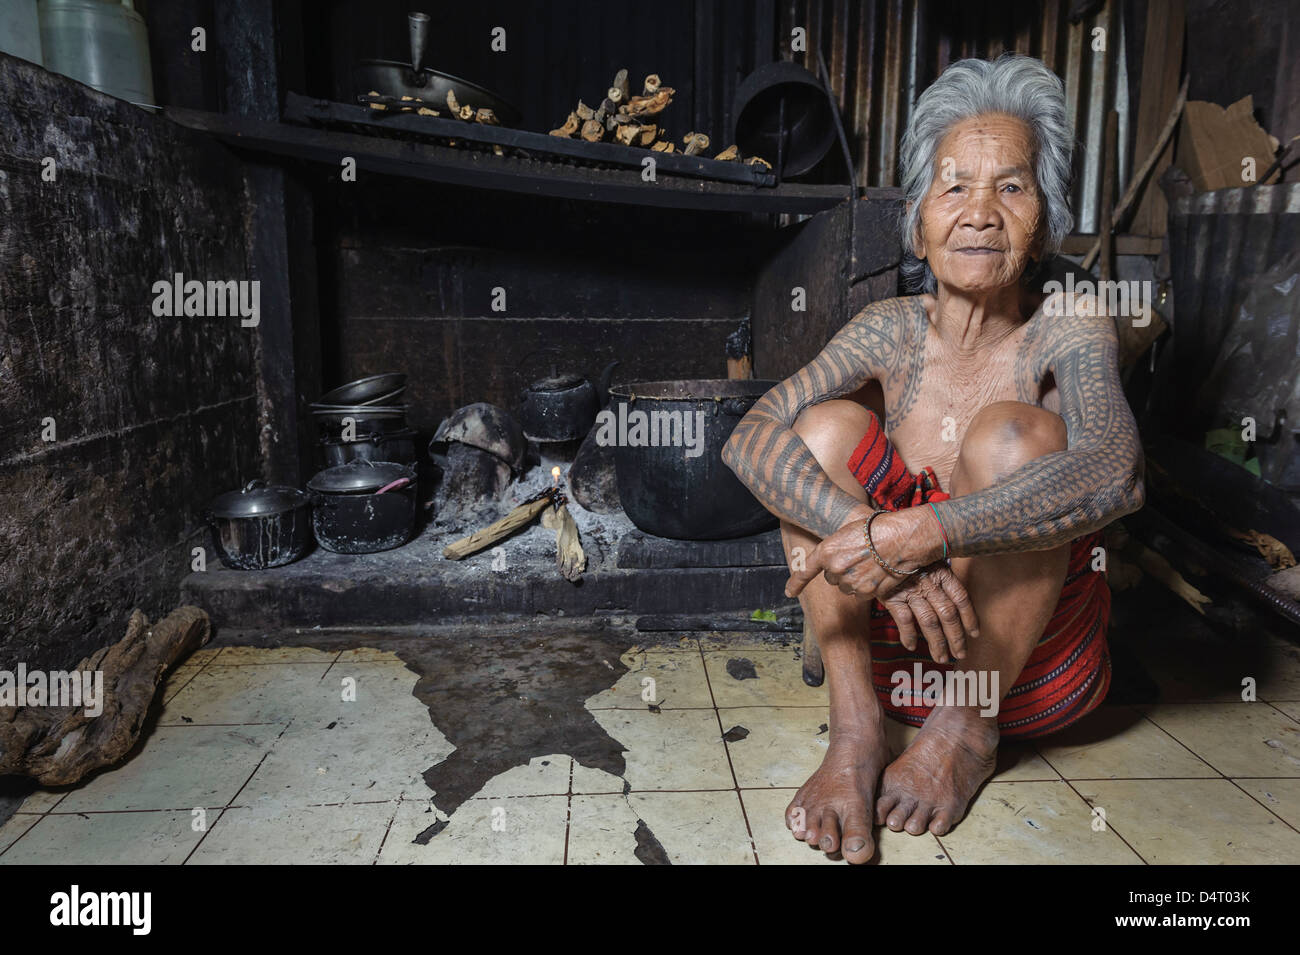 Ols tattooed woman from Tinglayan sitting by the fireplace, Luzon, Philippines. - Stock Image